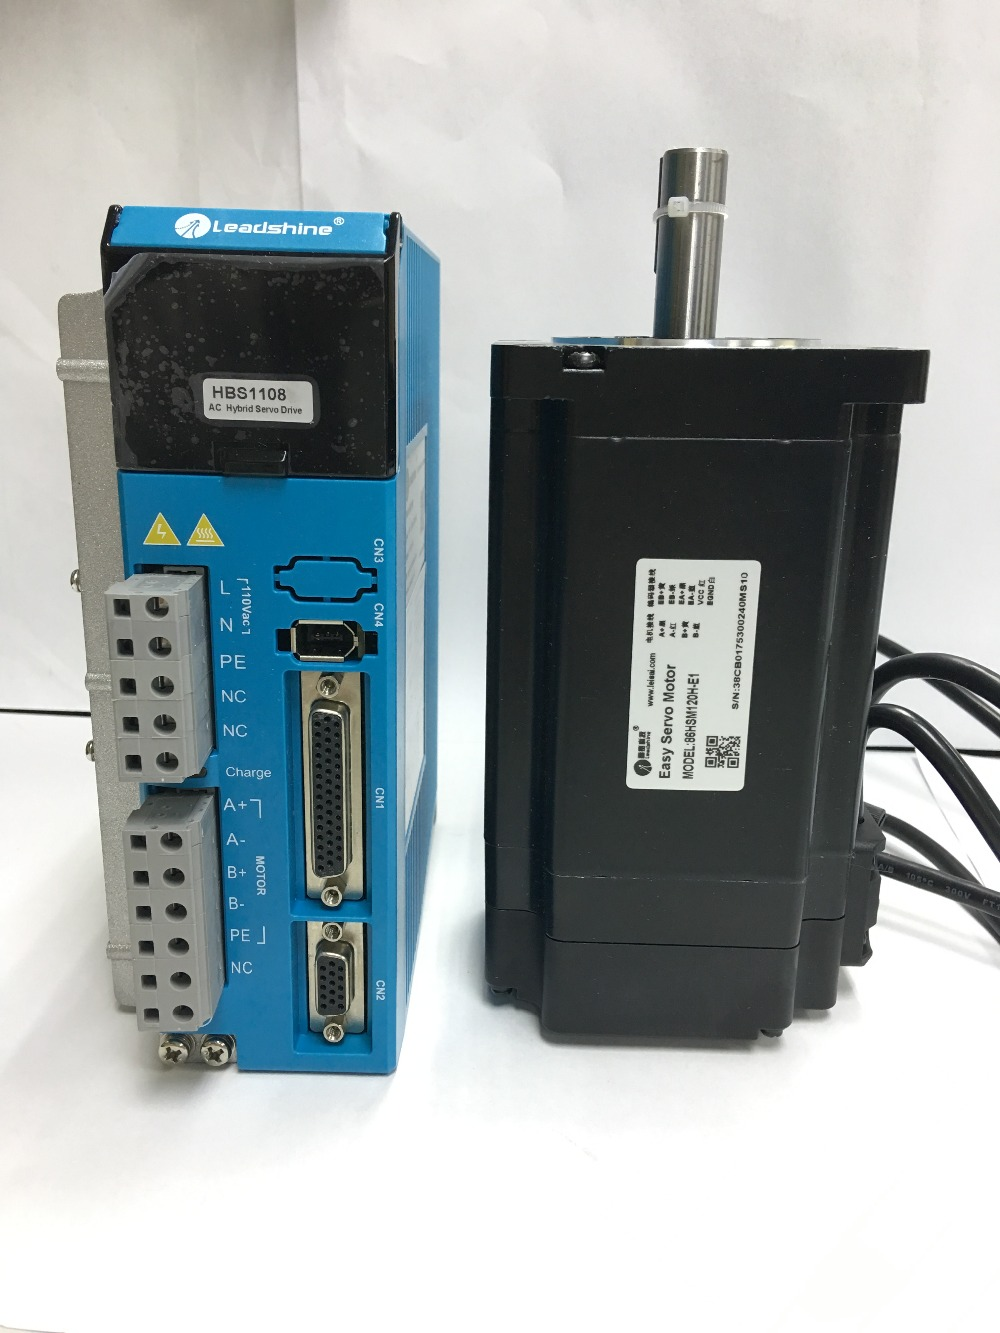 Leadshine easy servo drive HBS1108(ES-DH1208) and motor 86HSM120H-E1(ES-MH234120) for Engraving Machine